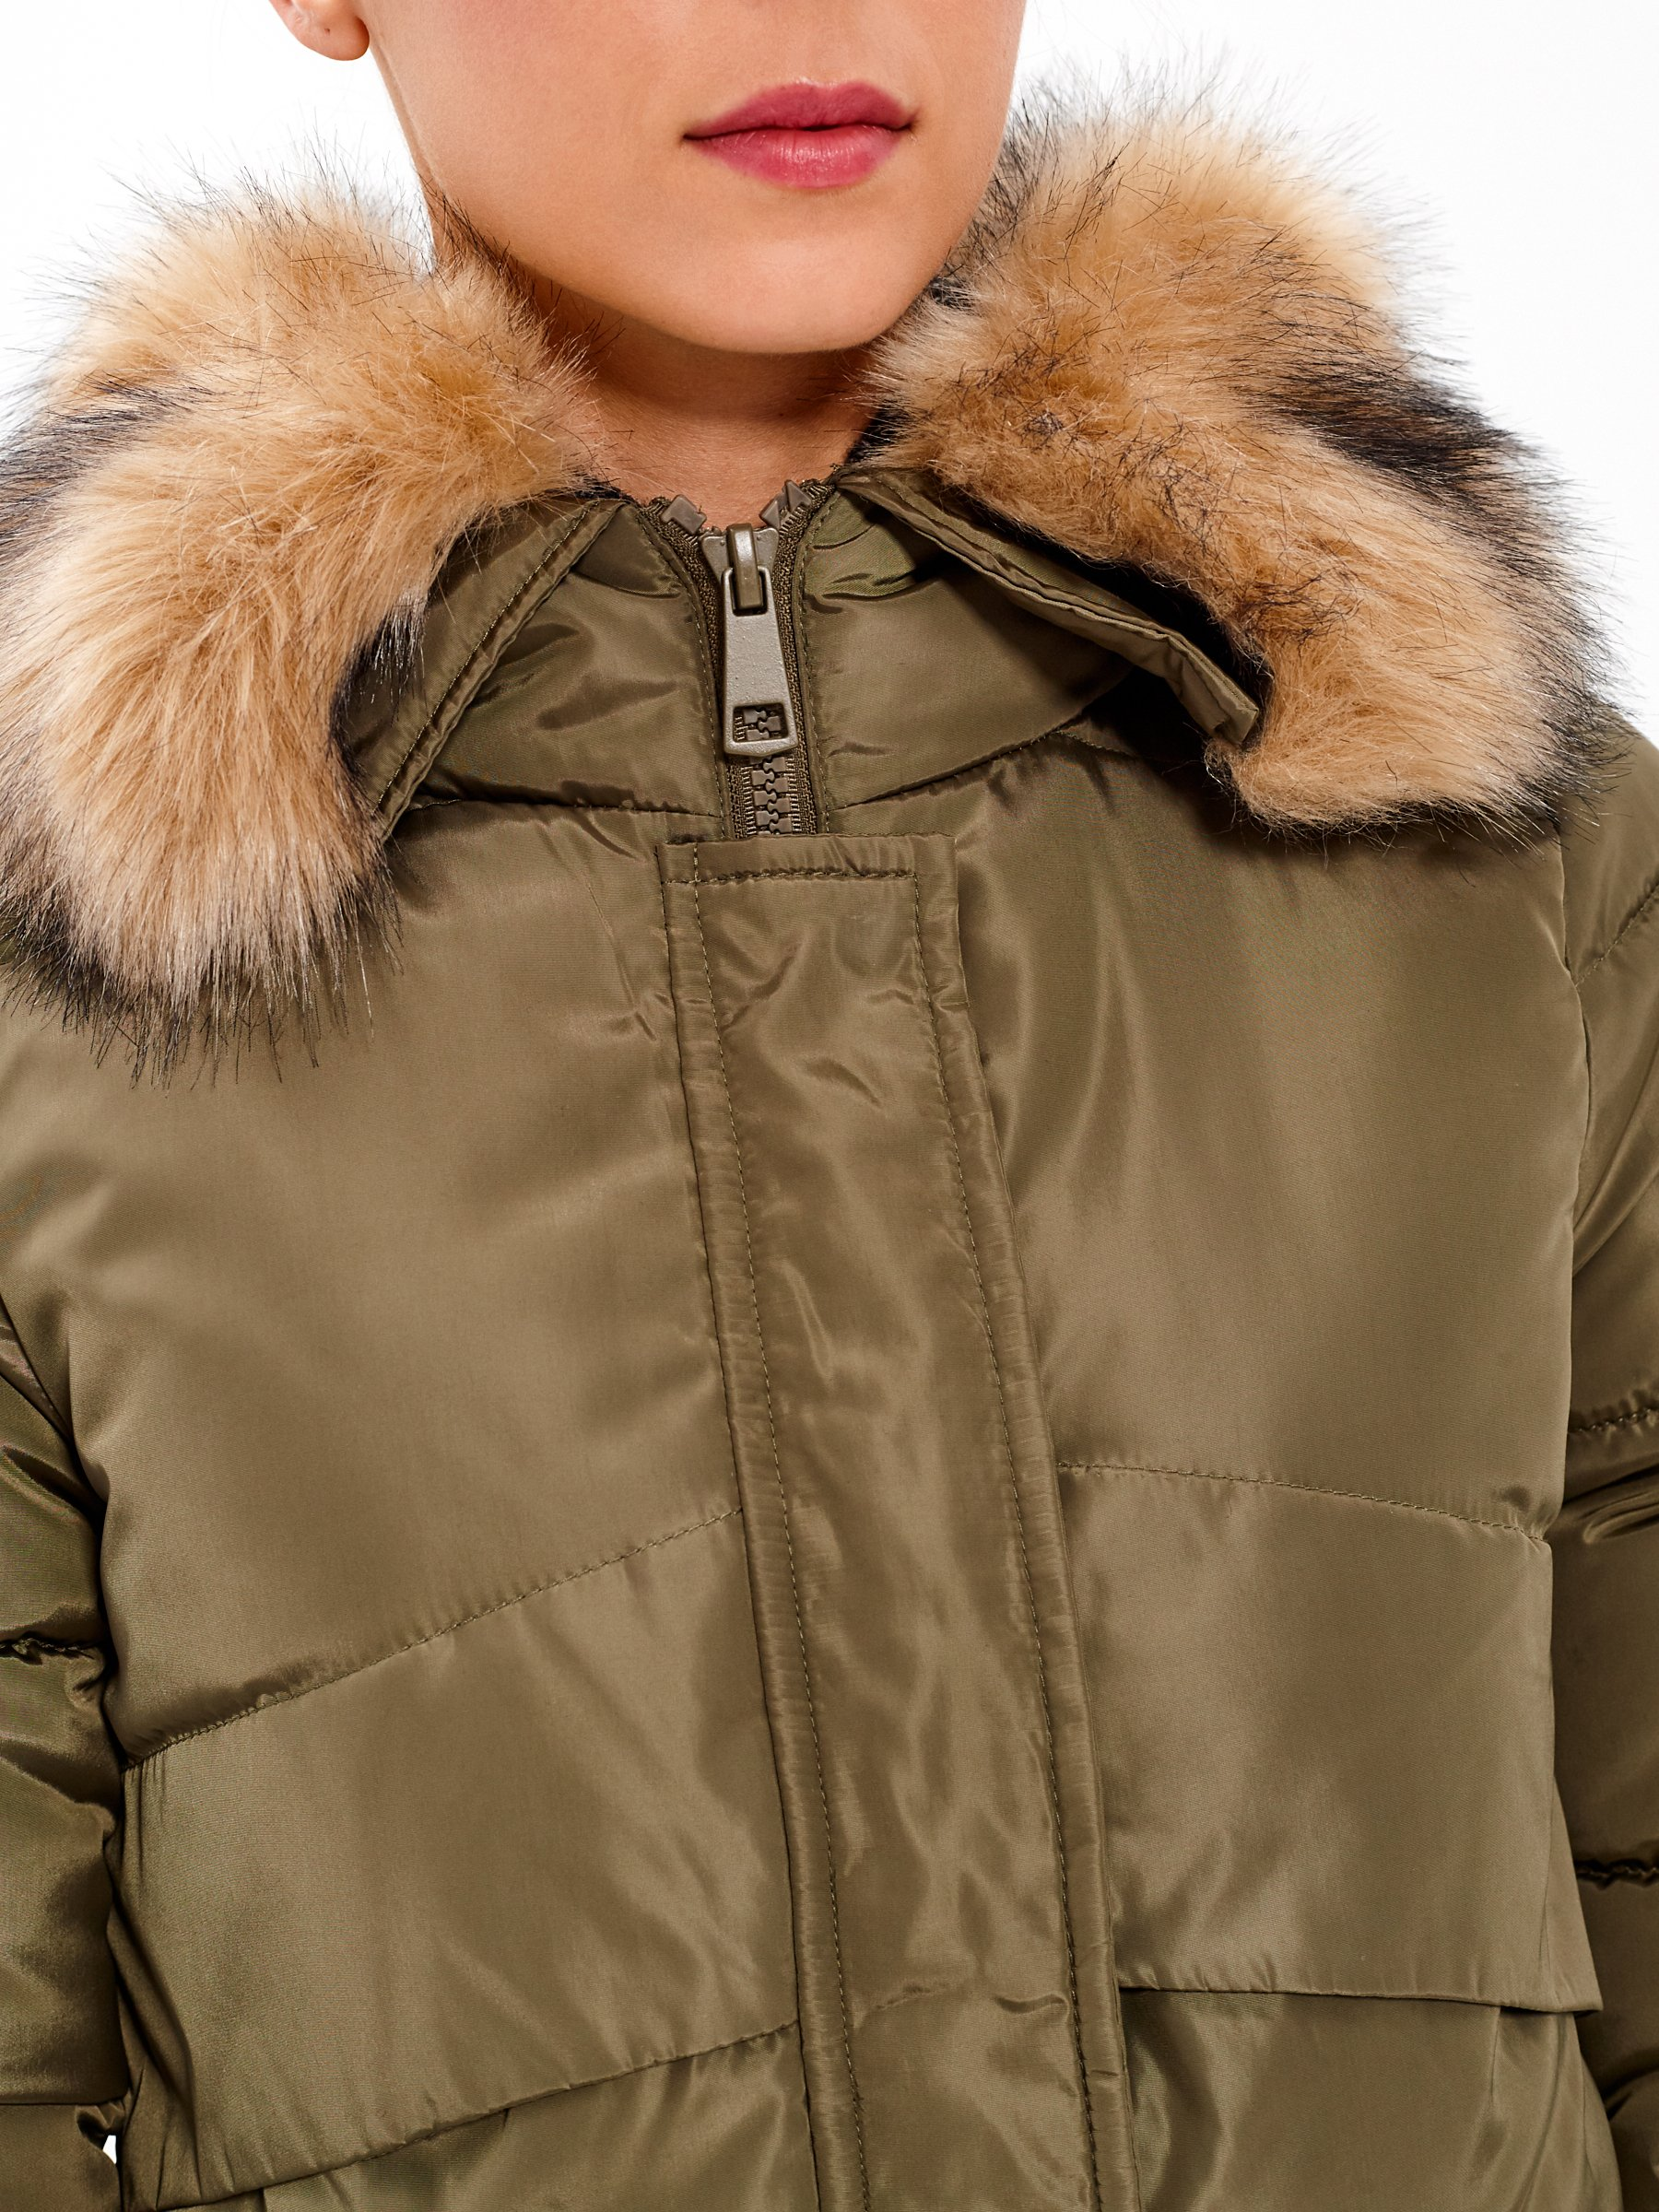 Longline padded jacket with eyelets on back